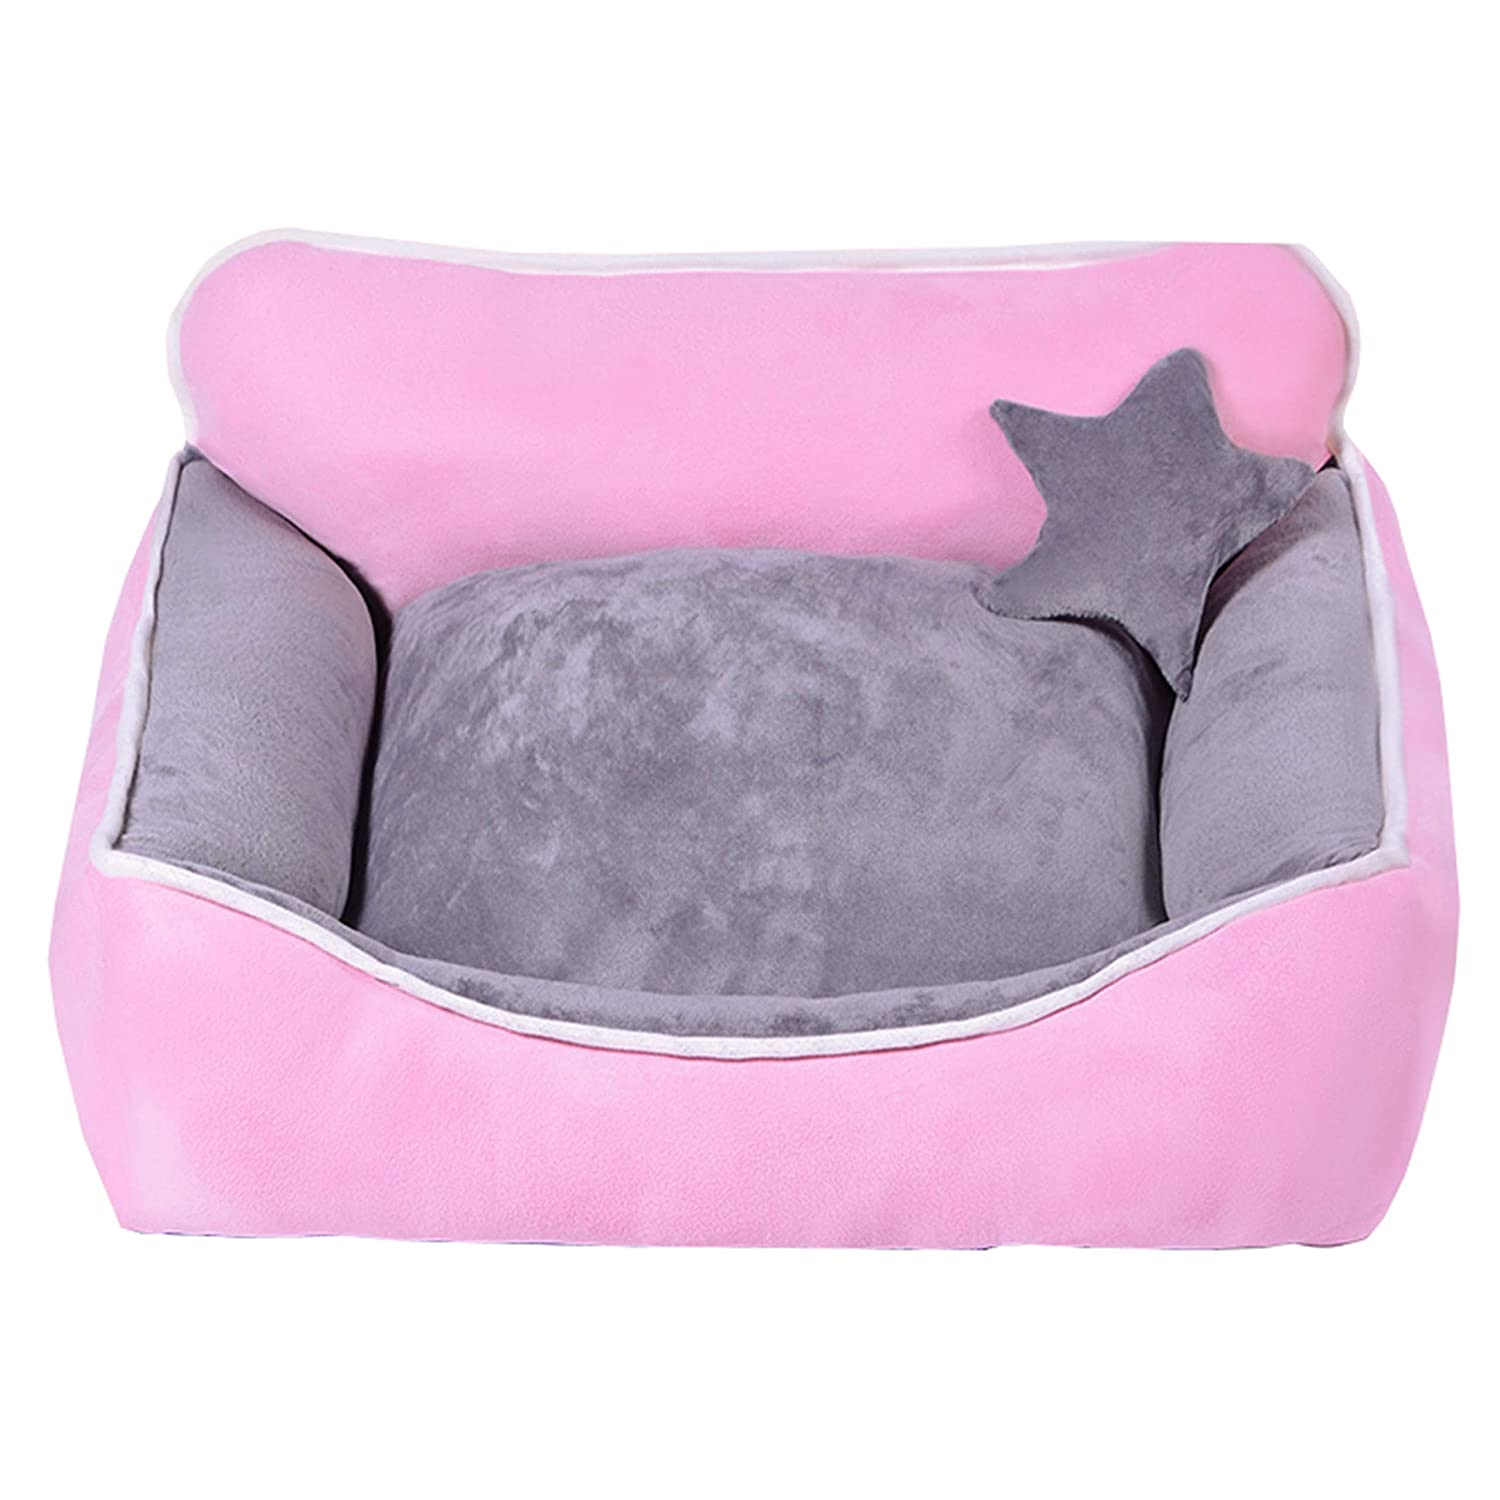 A1 Large A1 Large HHCWW Kennel Teddy Kennel removable and washable pet net red kennel four seasons small medium large dog bed winter warm,a1,L